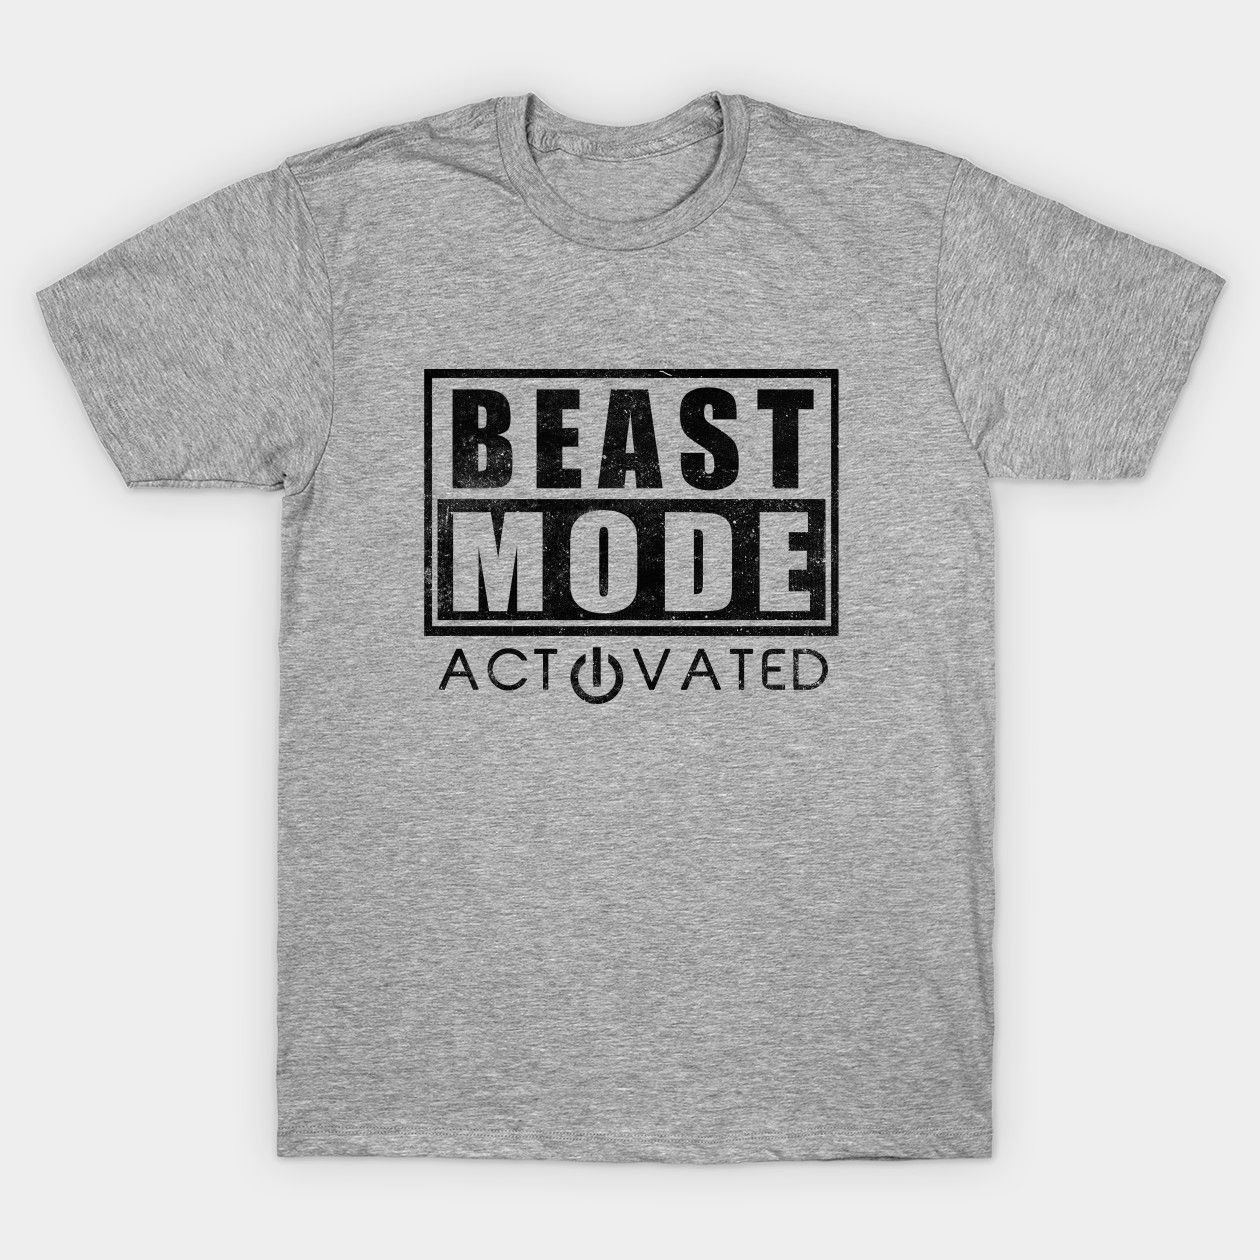 Beast Shirt Mode Gym Workout Weightlifting